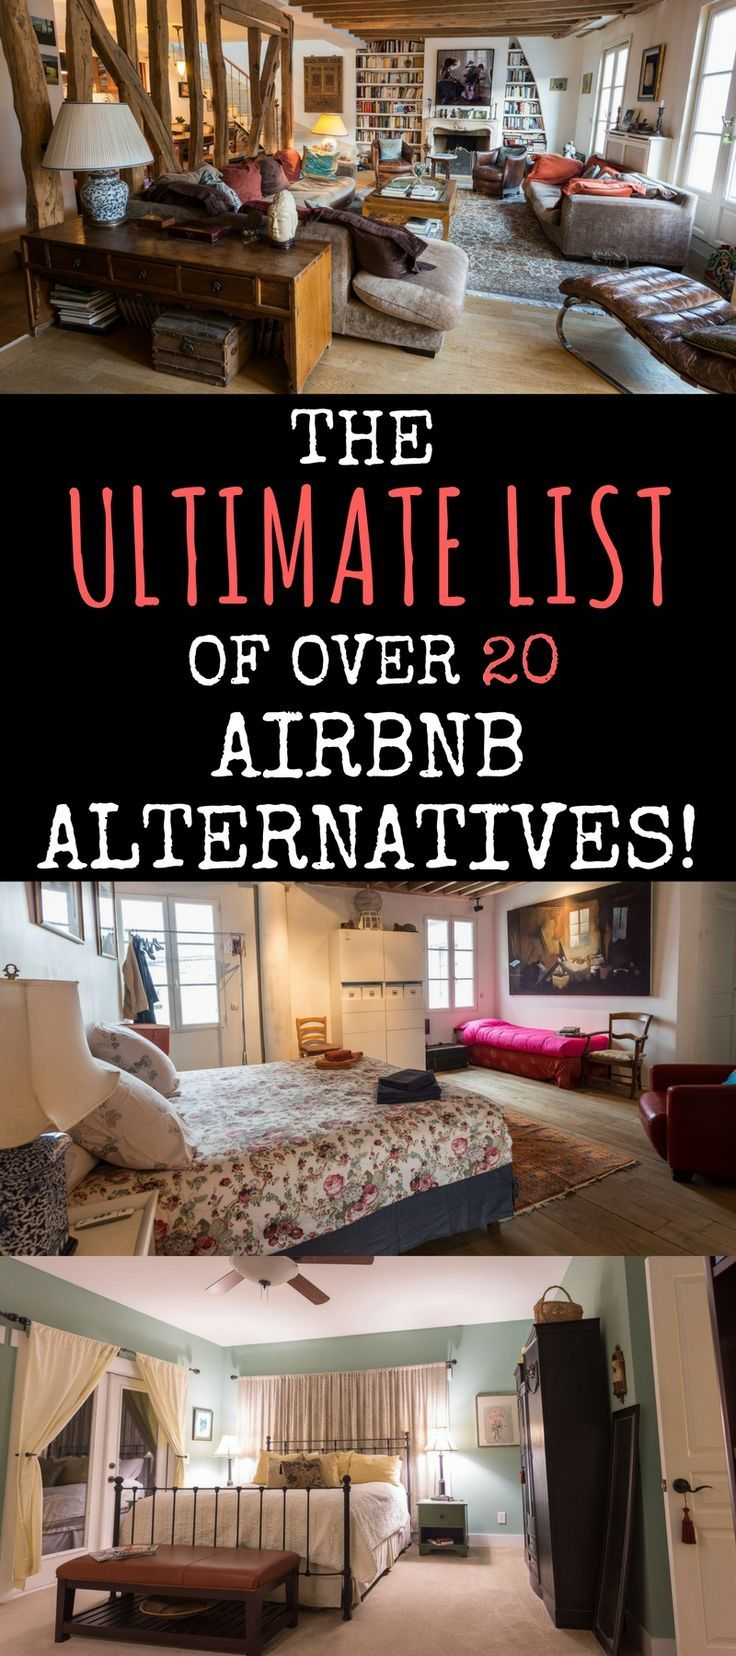 Looking for alternatives to AirBnb to book your next vacation rental or apartment? This guide provides information on over 20 apartment and vacation rental websites like AirBnb!